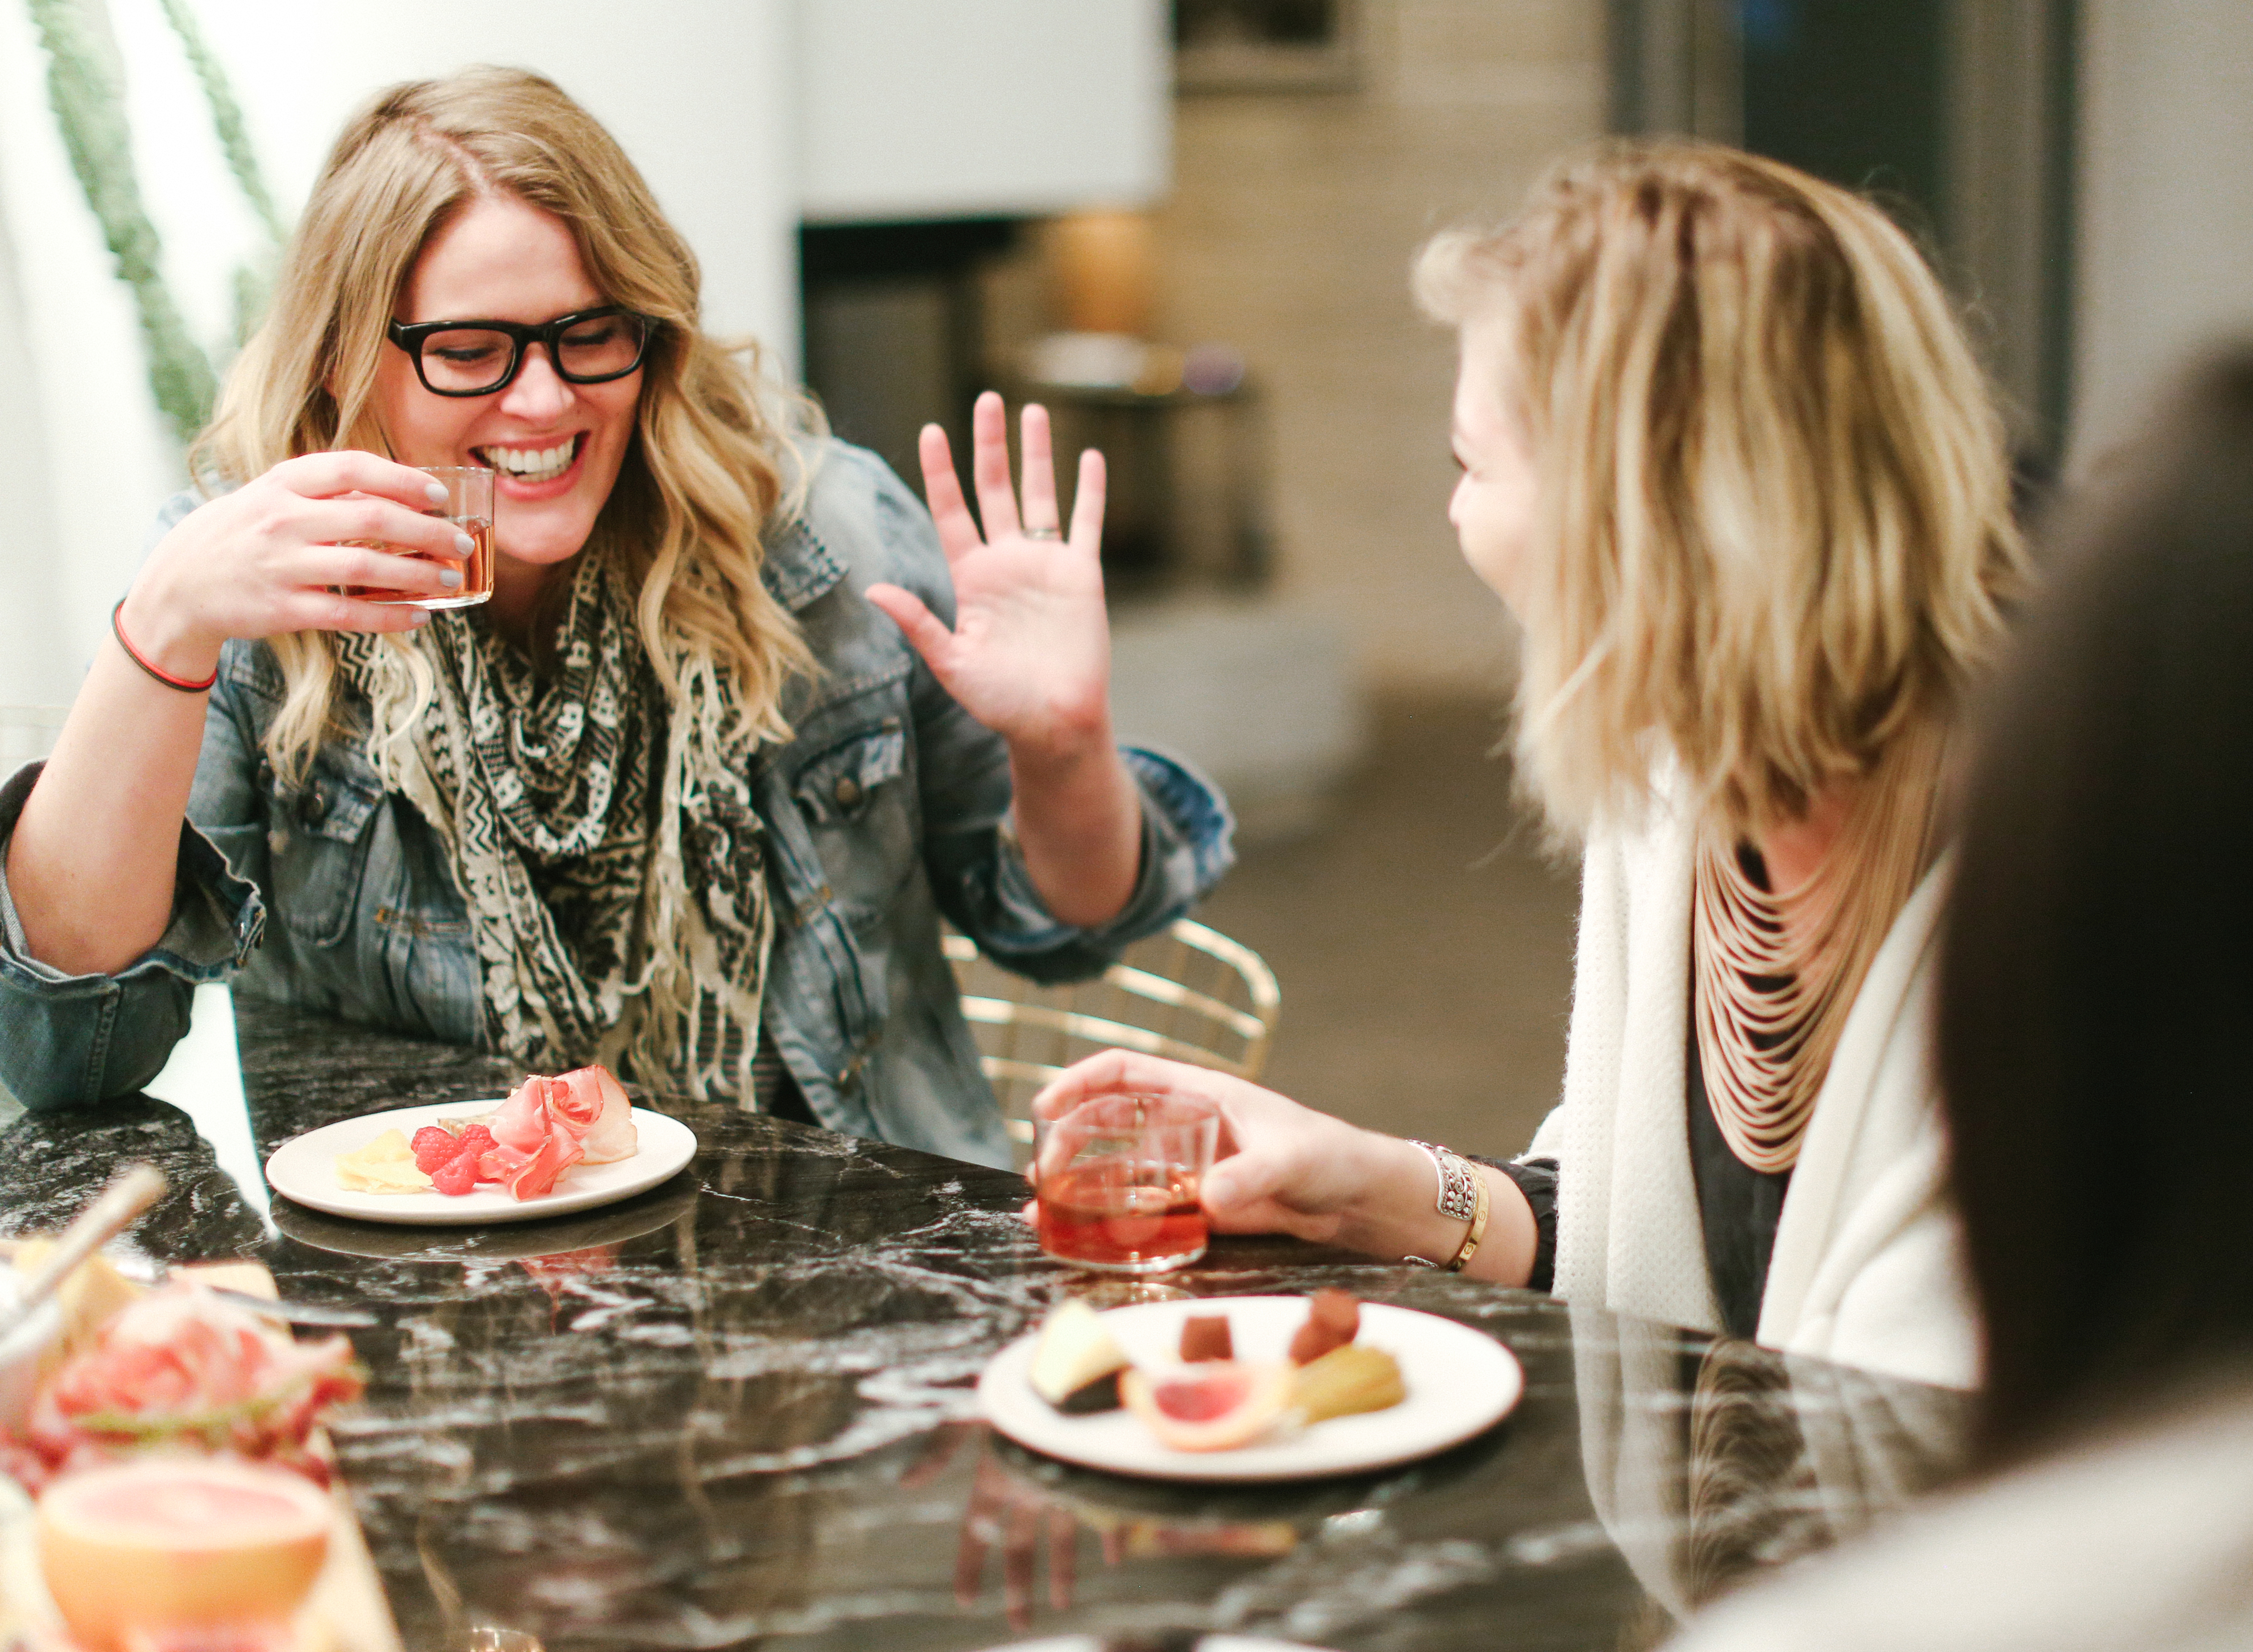 this year, we are switching things up & throwing a fun get-together that celebrates all the ladies in your life! No pressure, no weirdness, just lots of delicious wine, fabulous food, and the best friends. Who is in?! #ValentinesDay #GalentinesDay